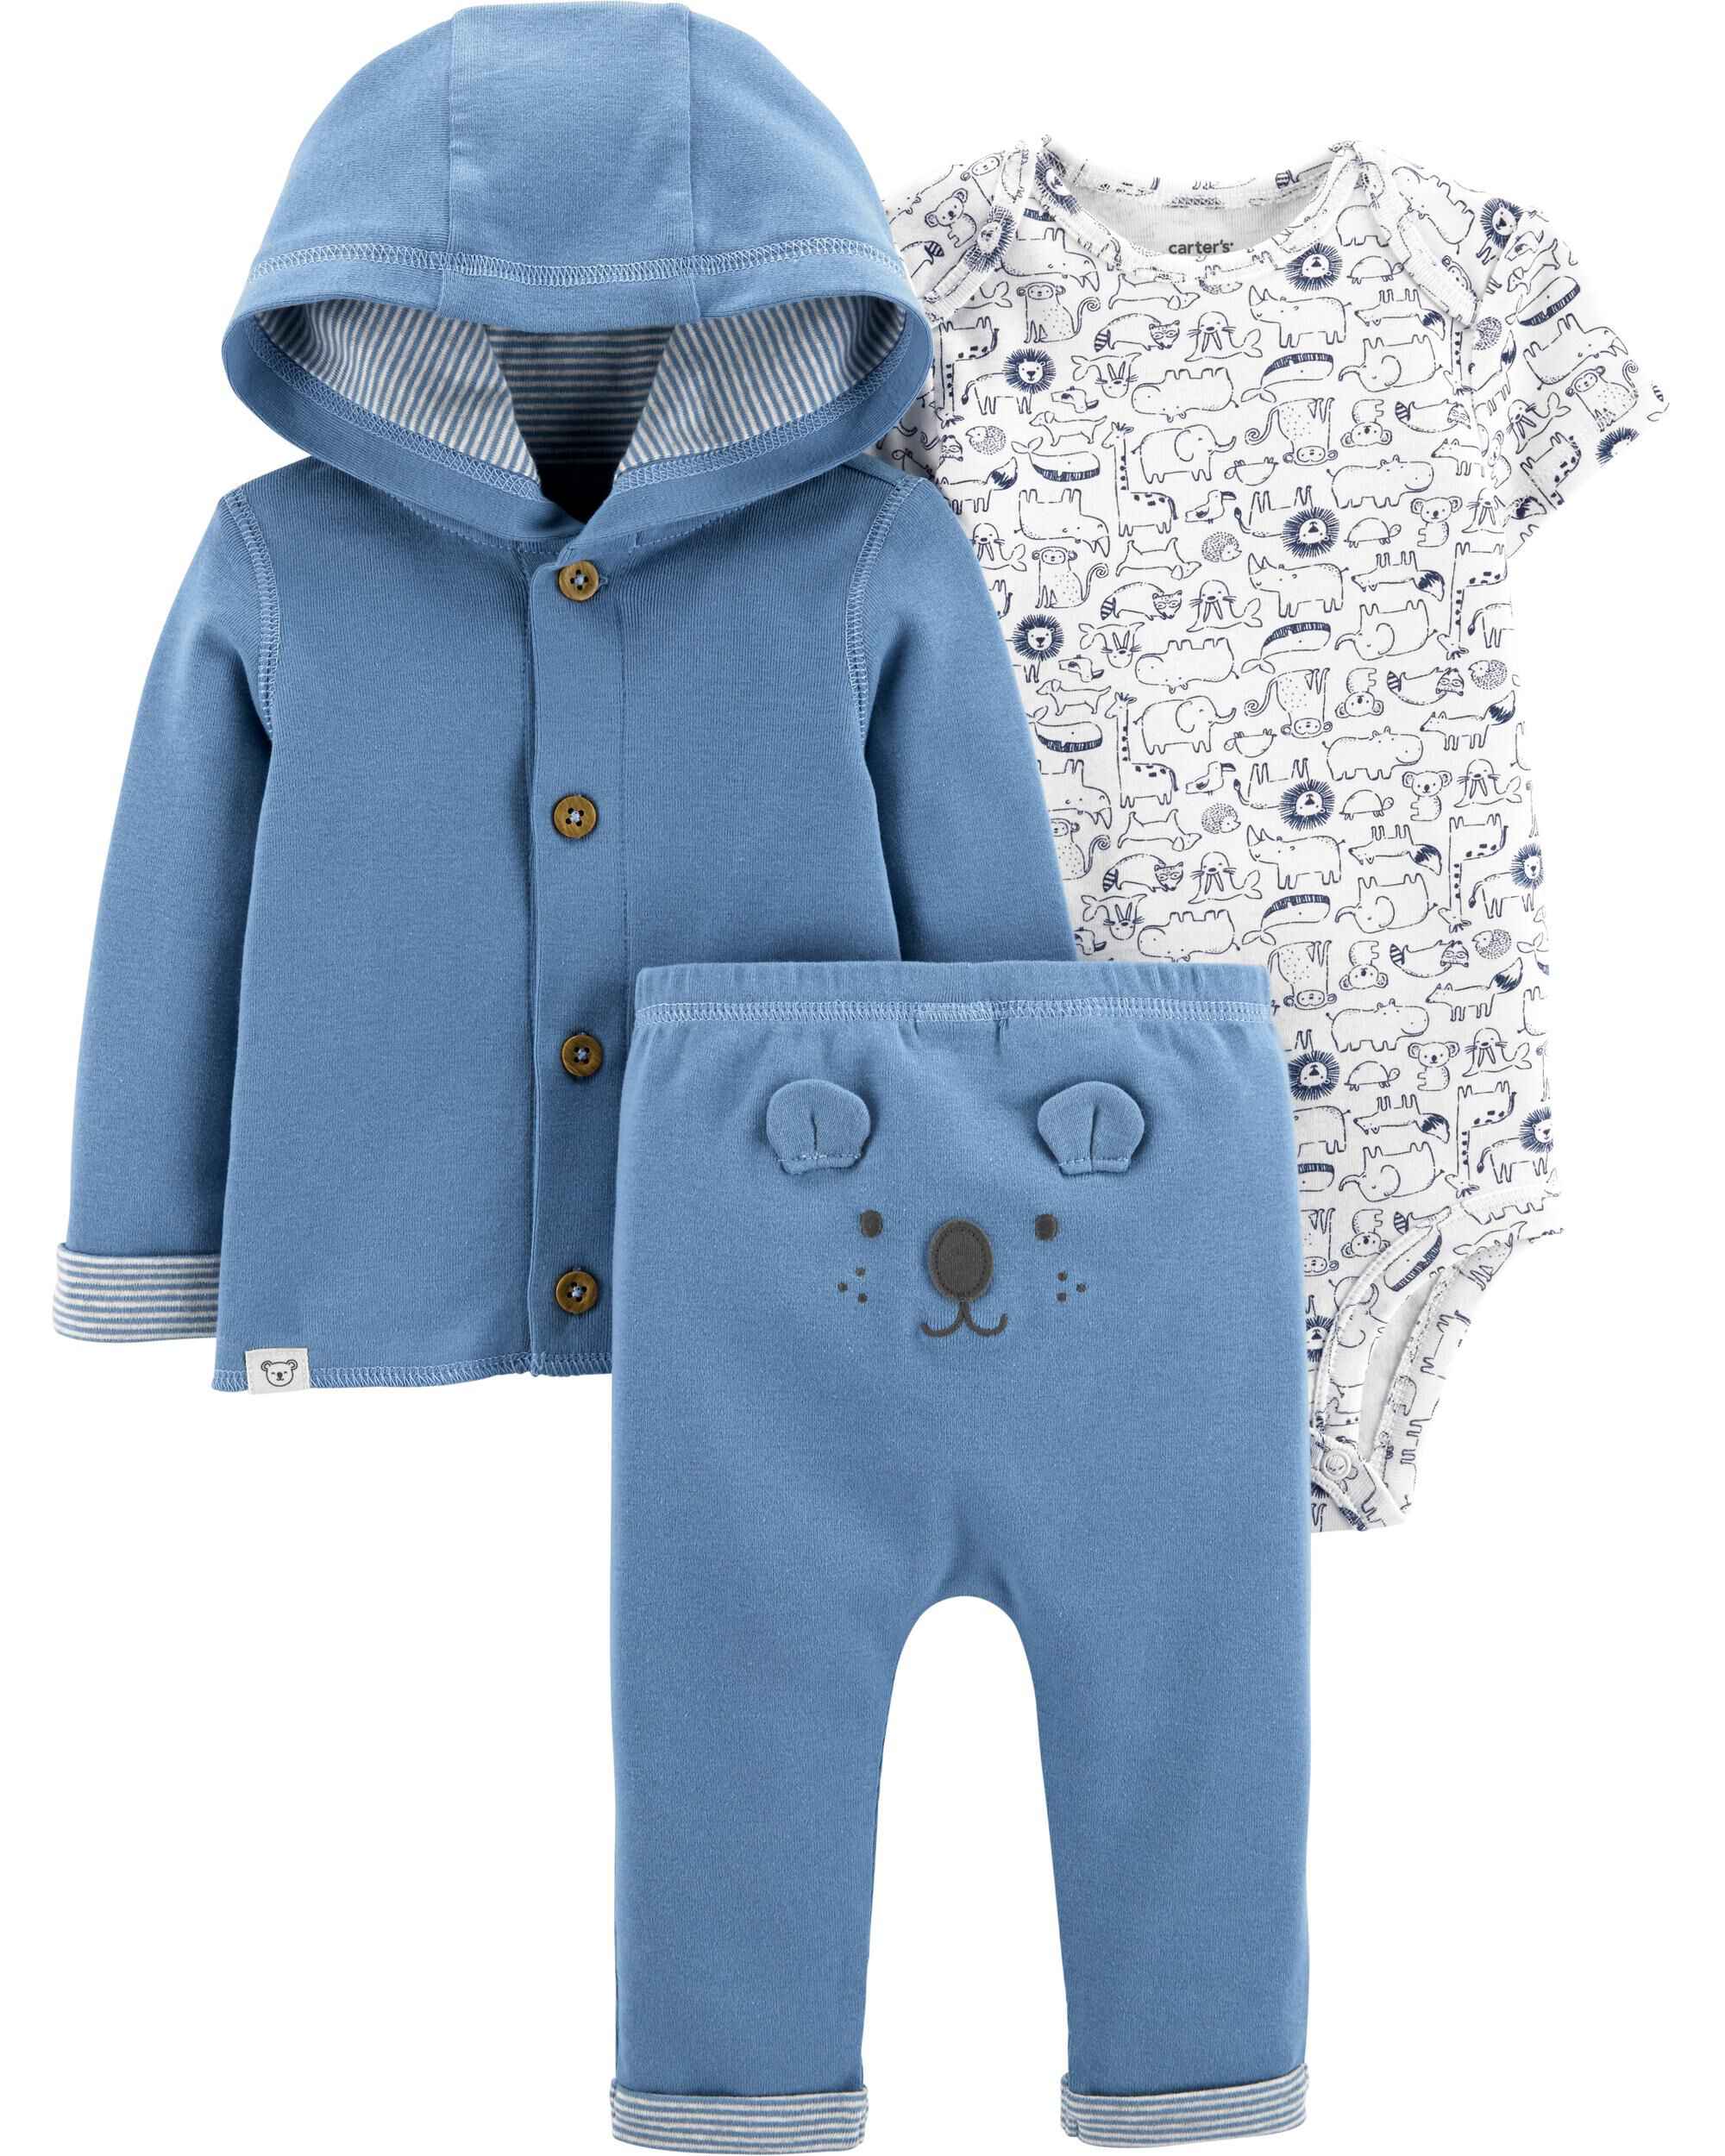 2019 Fashion Baby Boy Vest Size 0-3 Months Brand New With Tags Attractive And Durable One-pieces